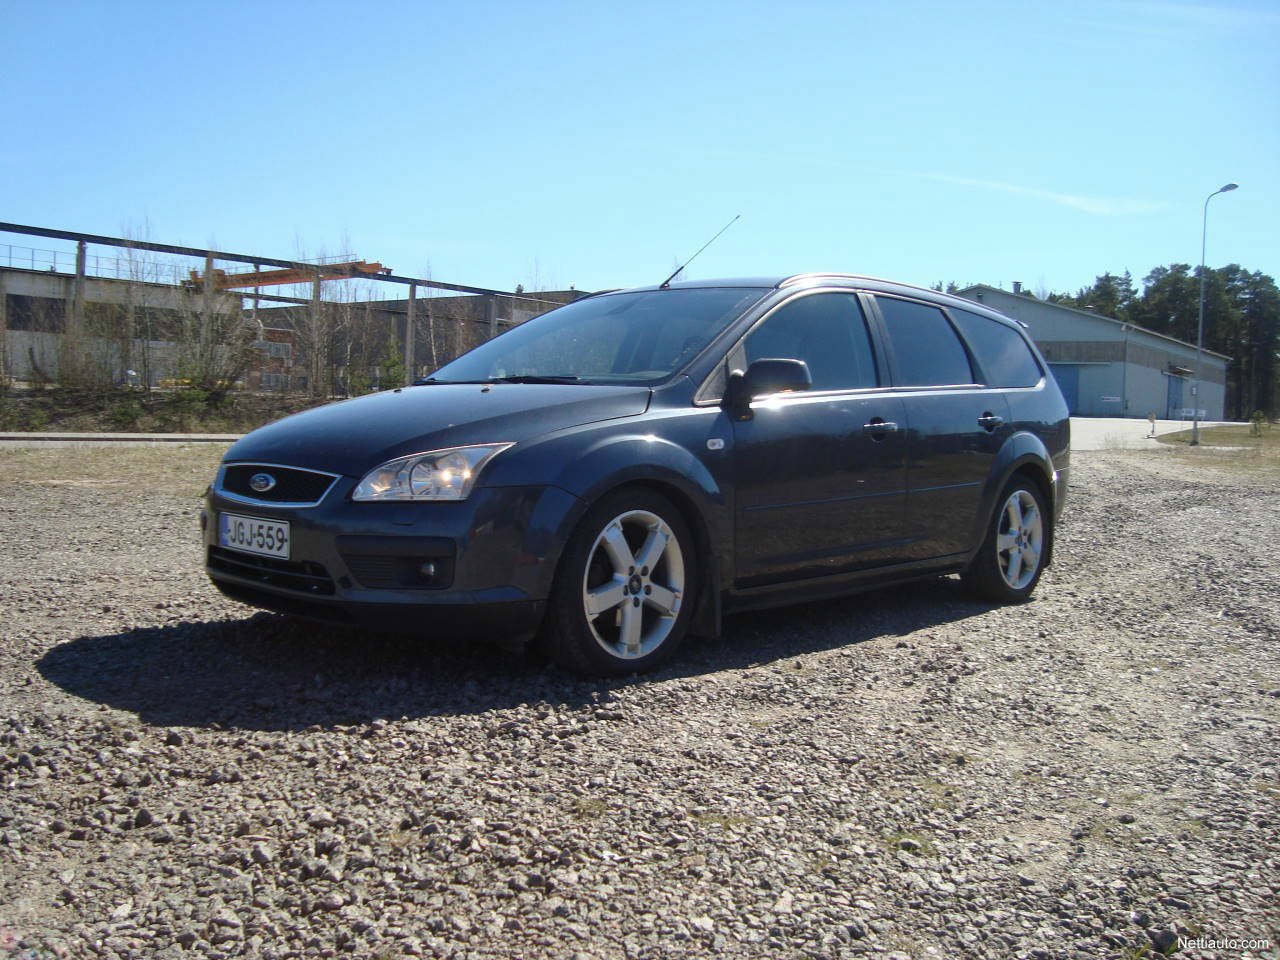 ford focus 1 6 ti vct ghia wagon station wagon 2006 used. Black Bedroom Furniture Sets. Home Design Ideas